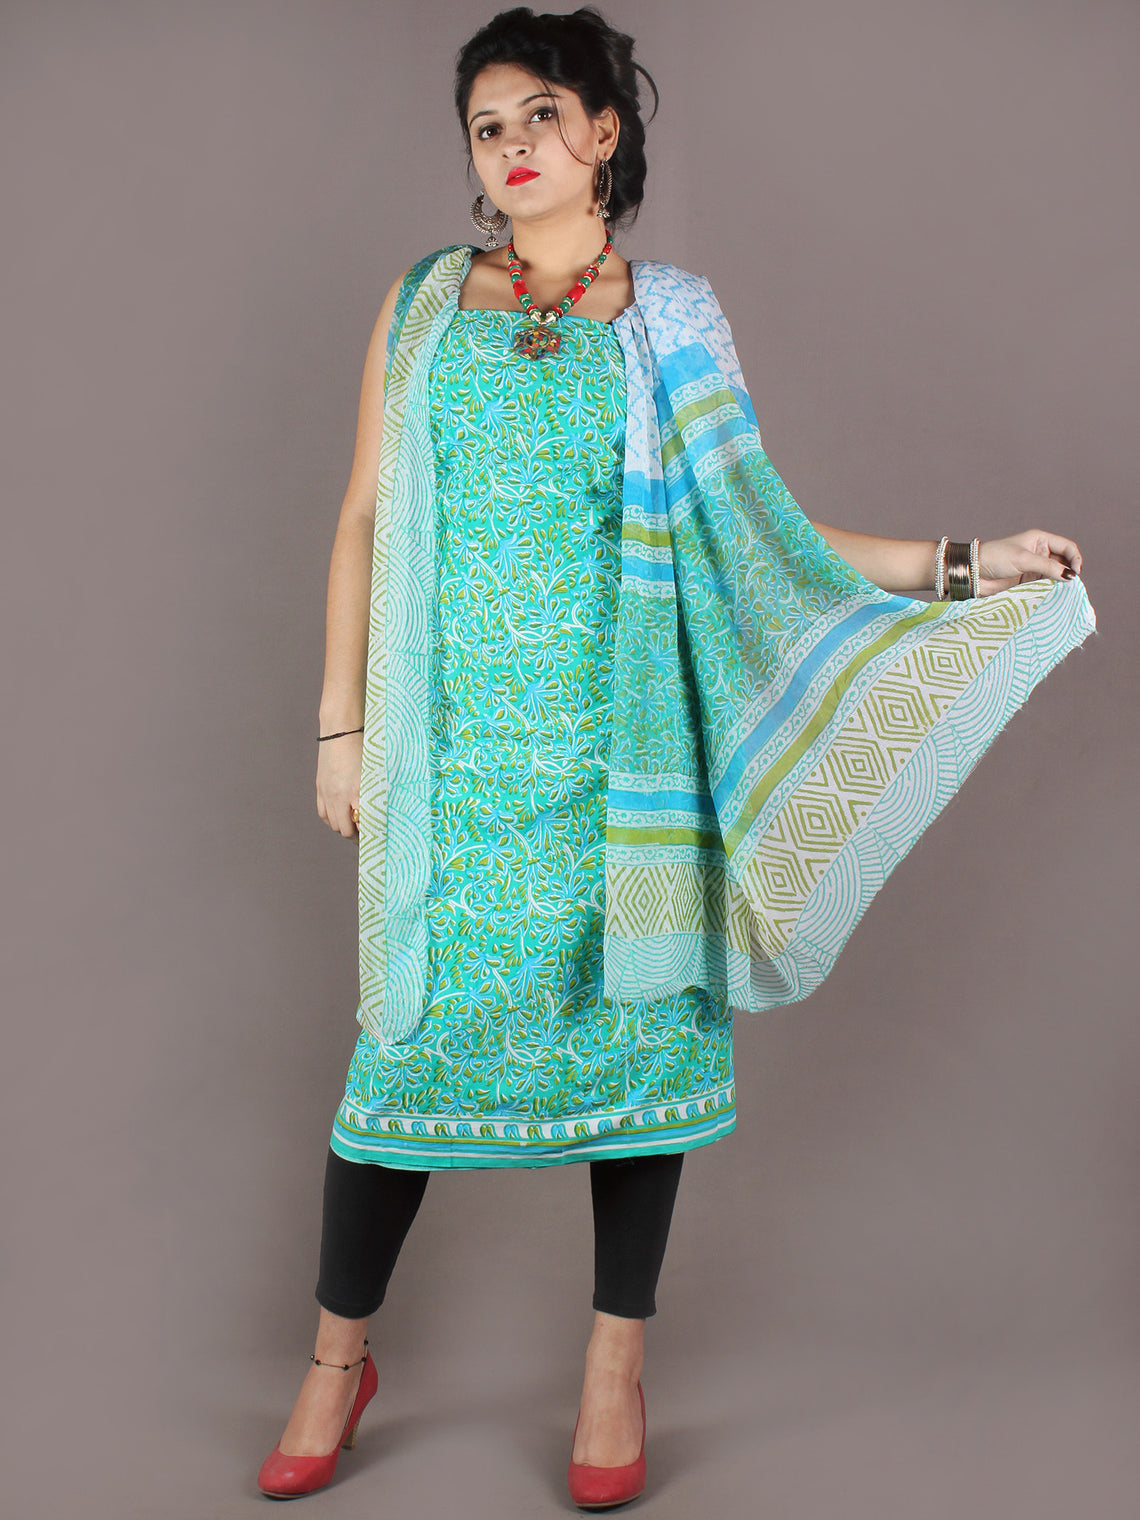 Cyan Blue White Hand Block Printed Cotton Suit-Salwar Fabric With Chiffon Dupatta - S1628147